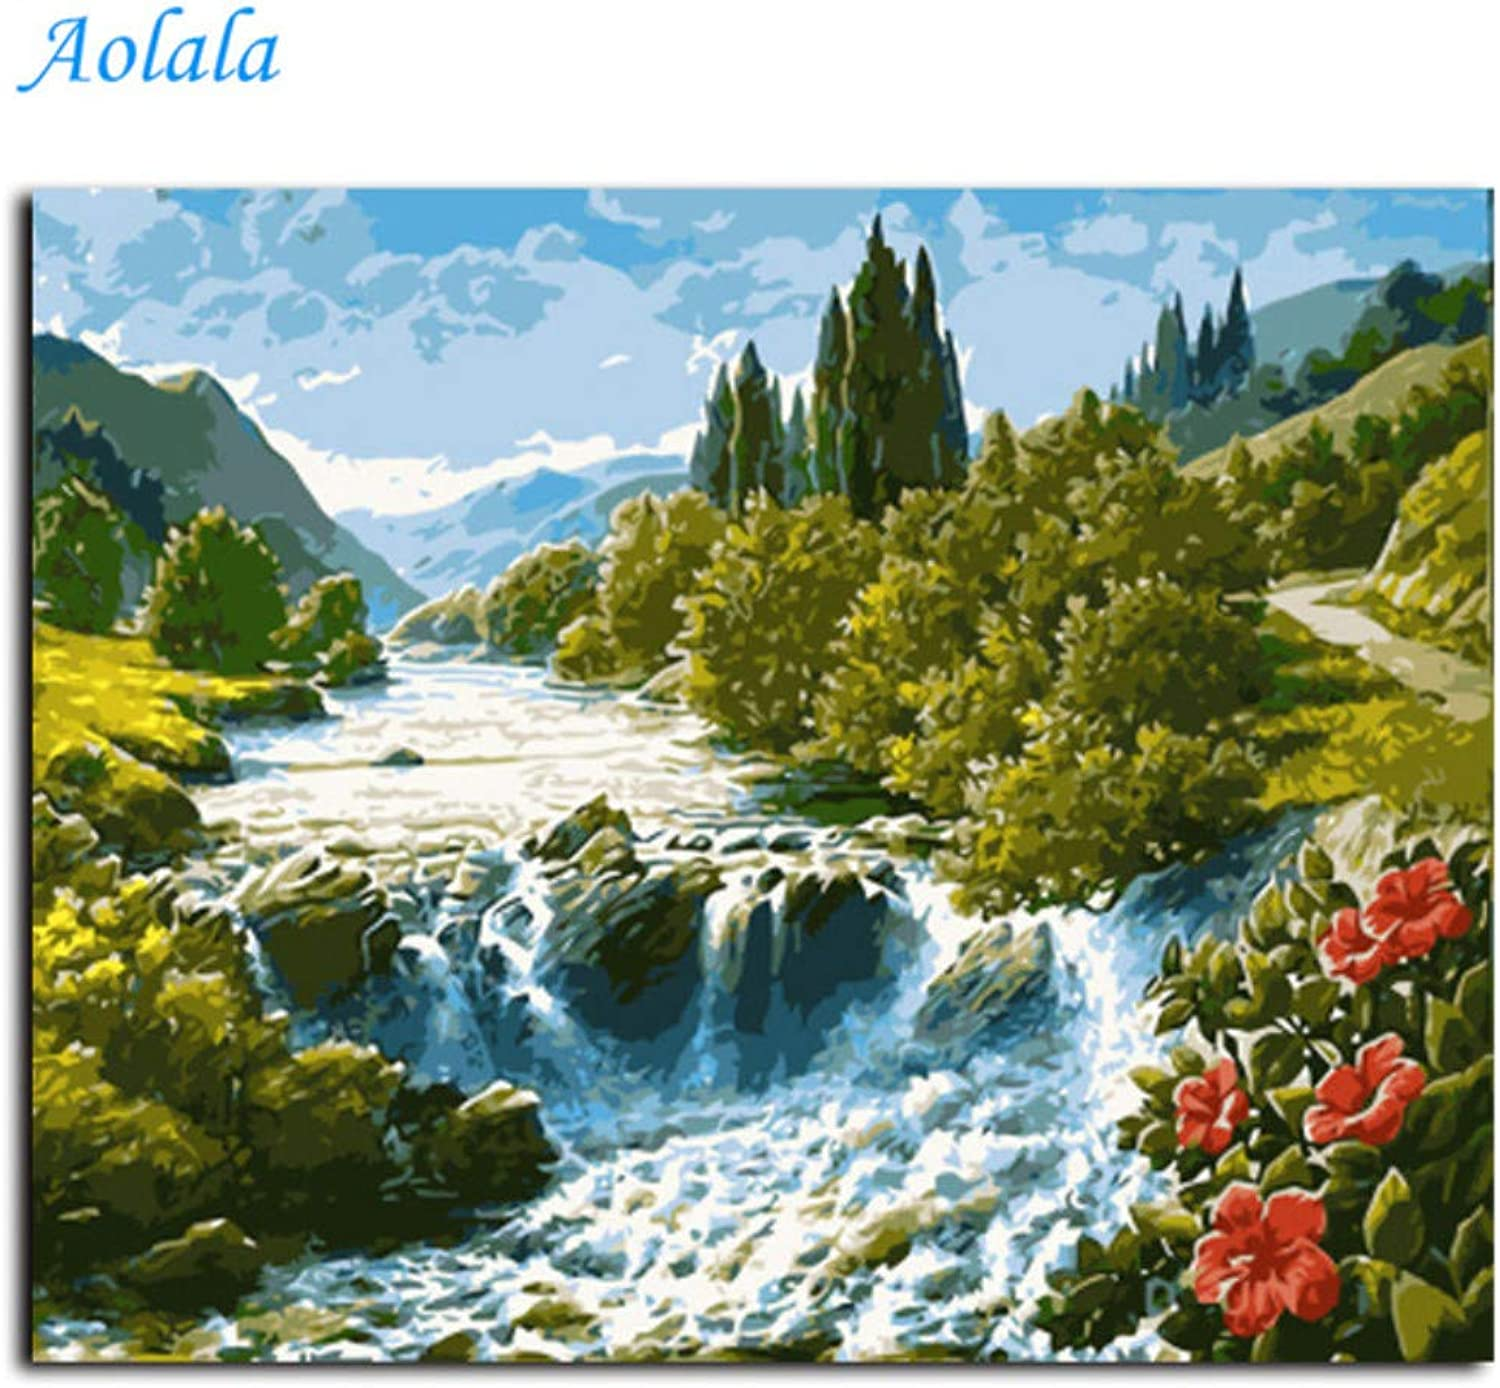 Landscape Pictures Painting by Numbers Wall Art DIY Canvas Oil Painting Home Decor,50x65cm